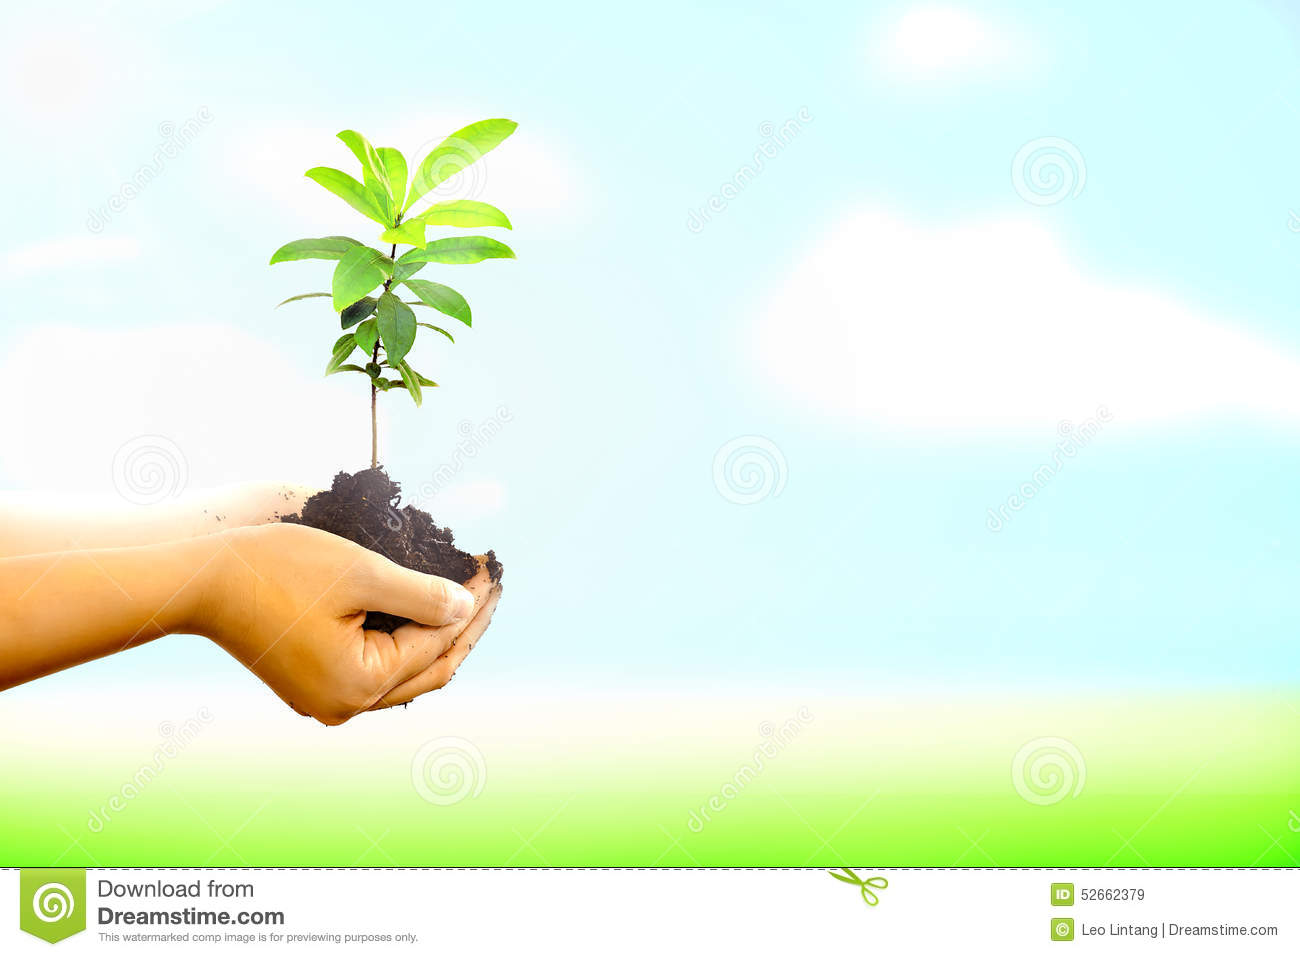 Image result for images- new tree in the world